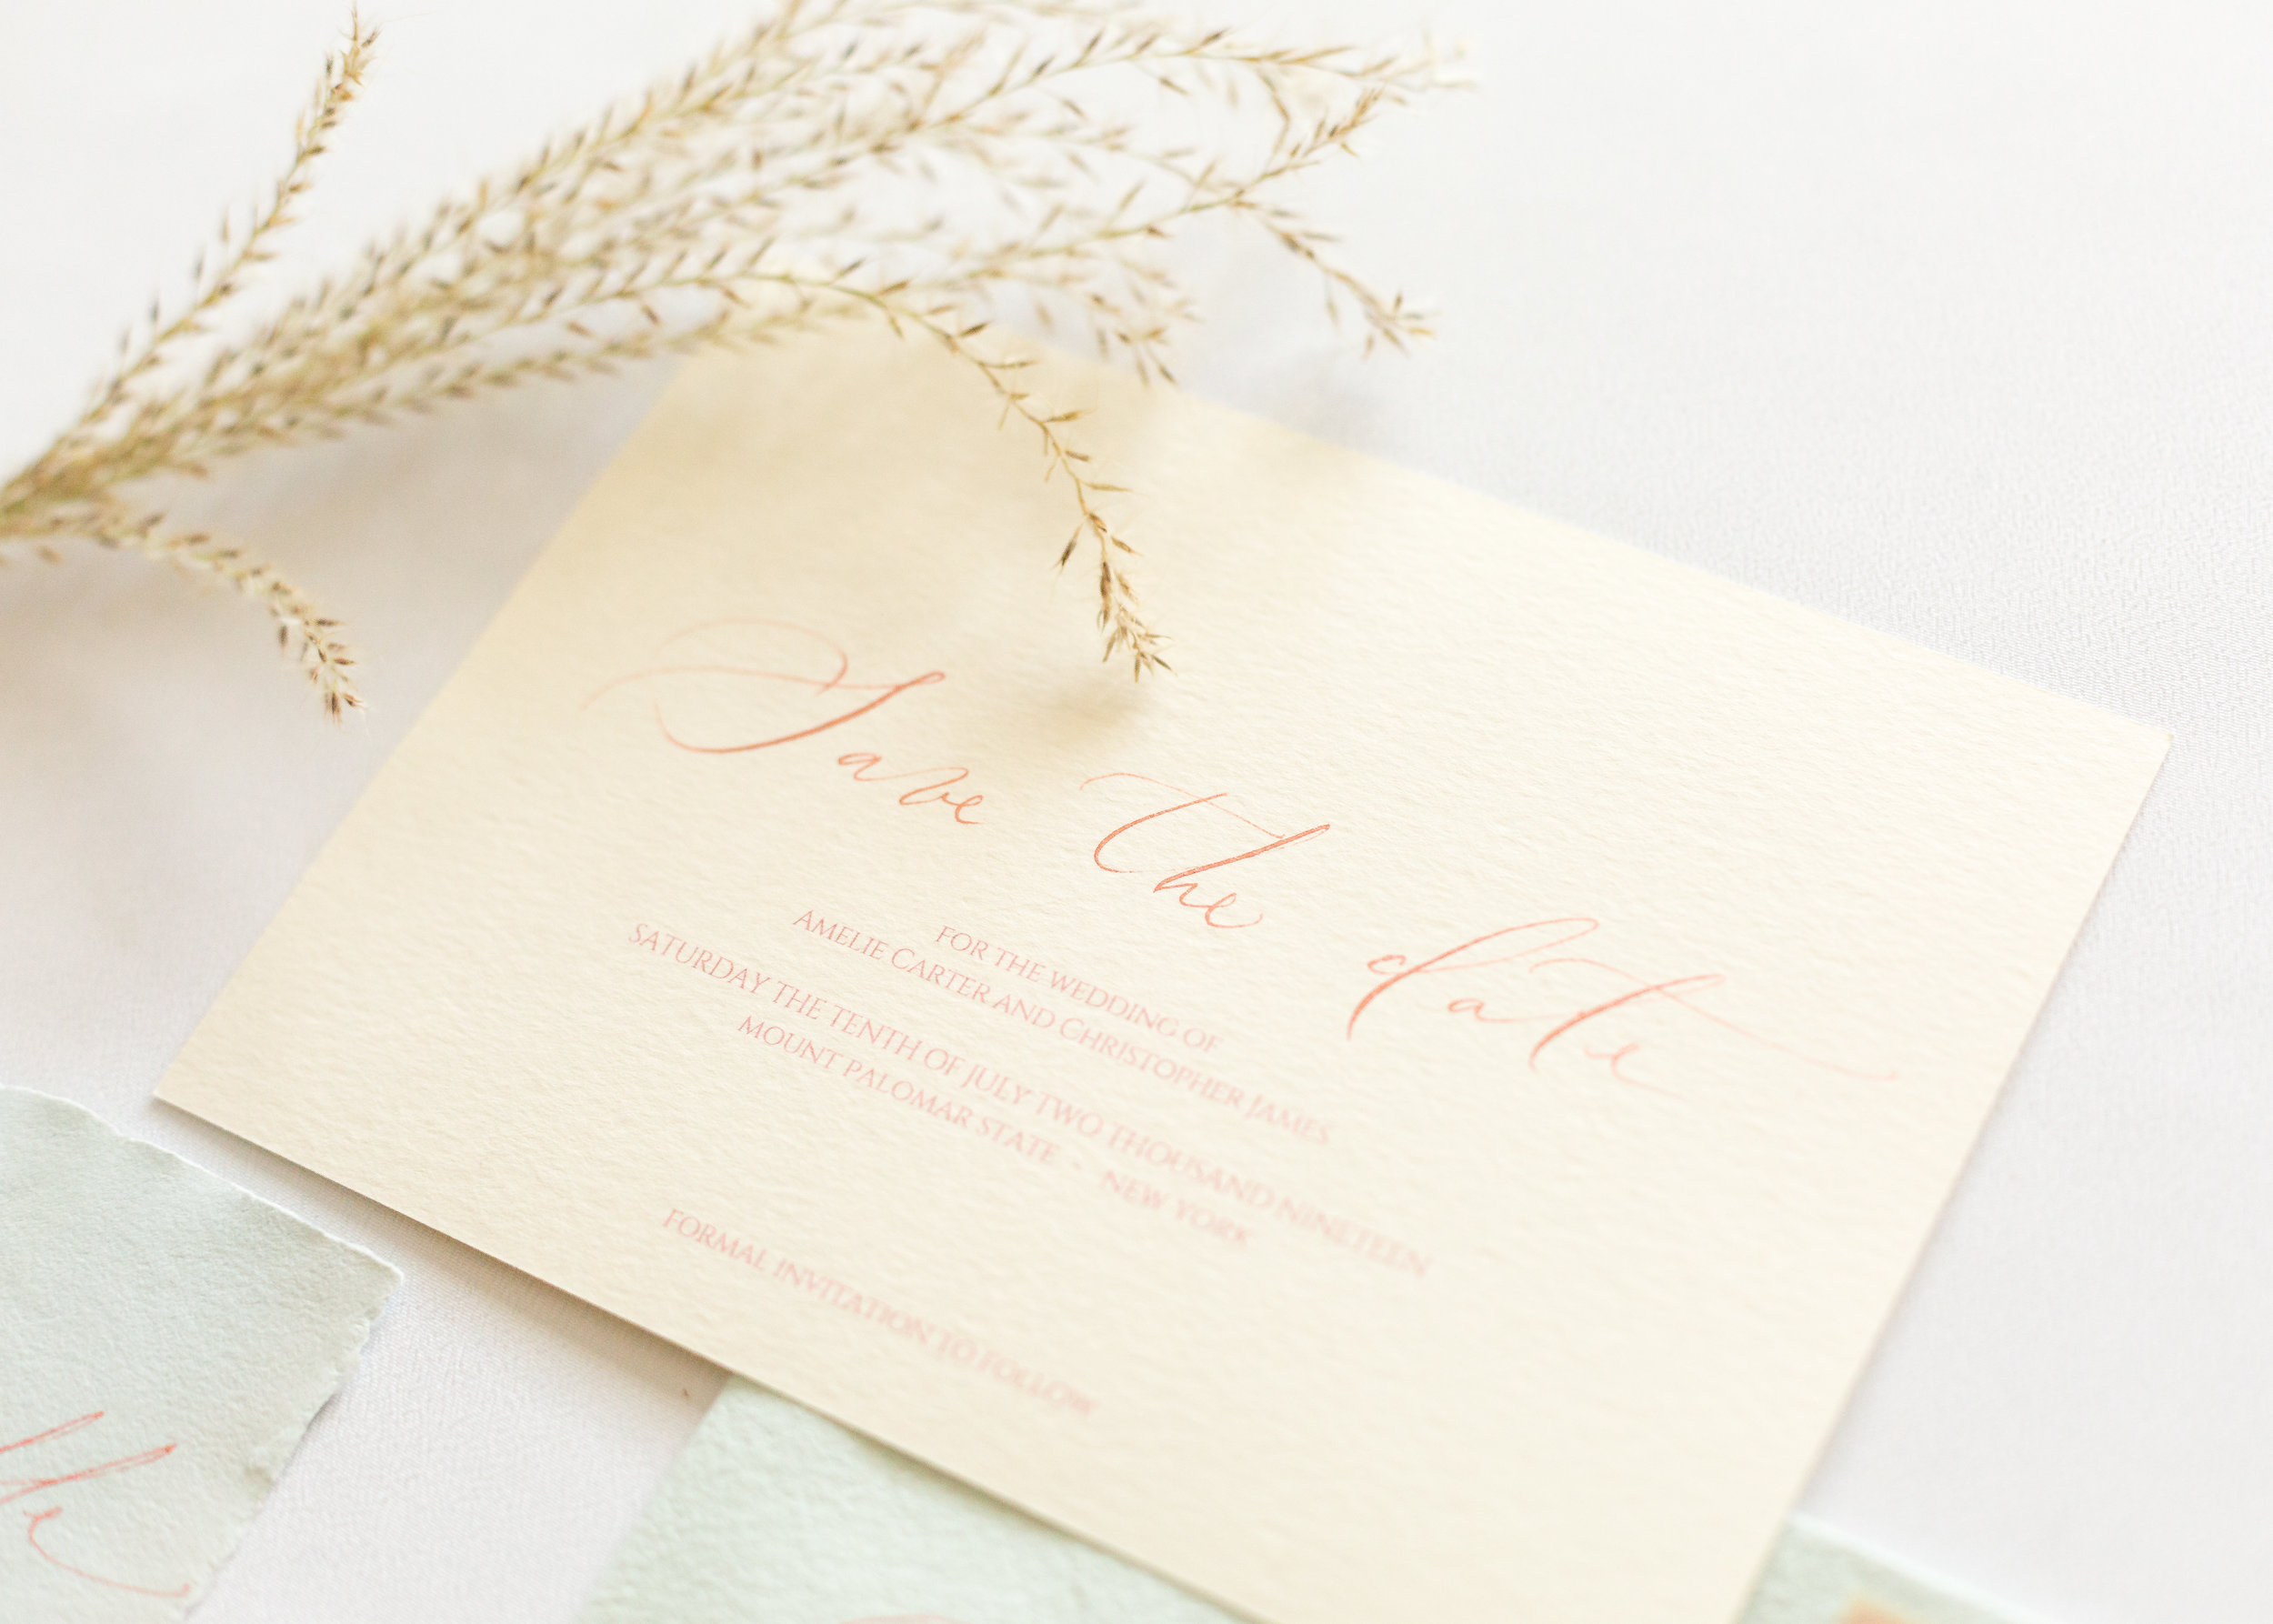 Timeless Romantic Wedding Calligraphy Save the date - Esperanza Atelier Fine Art Calligraphy. Bespoke Wedding envelope Calligraphy Houston weddings -  Houston Calligrapher.